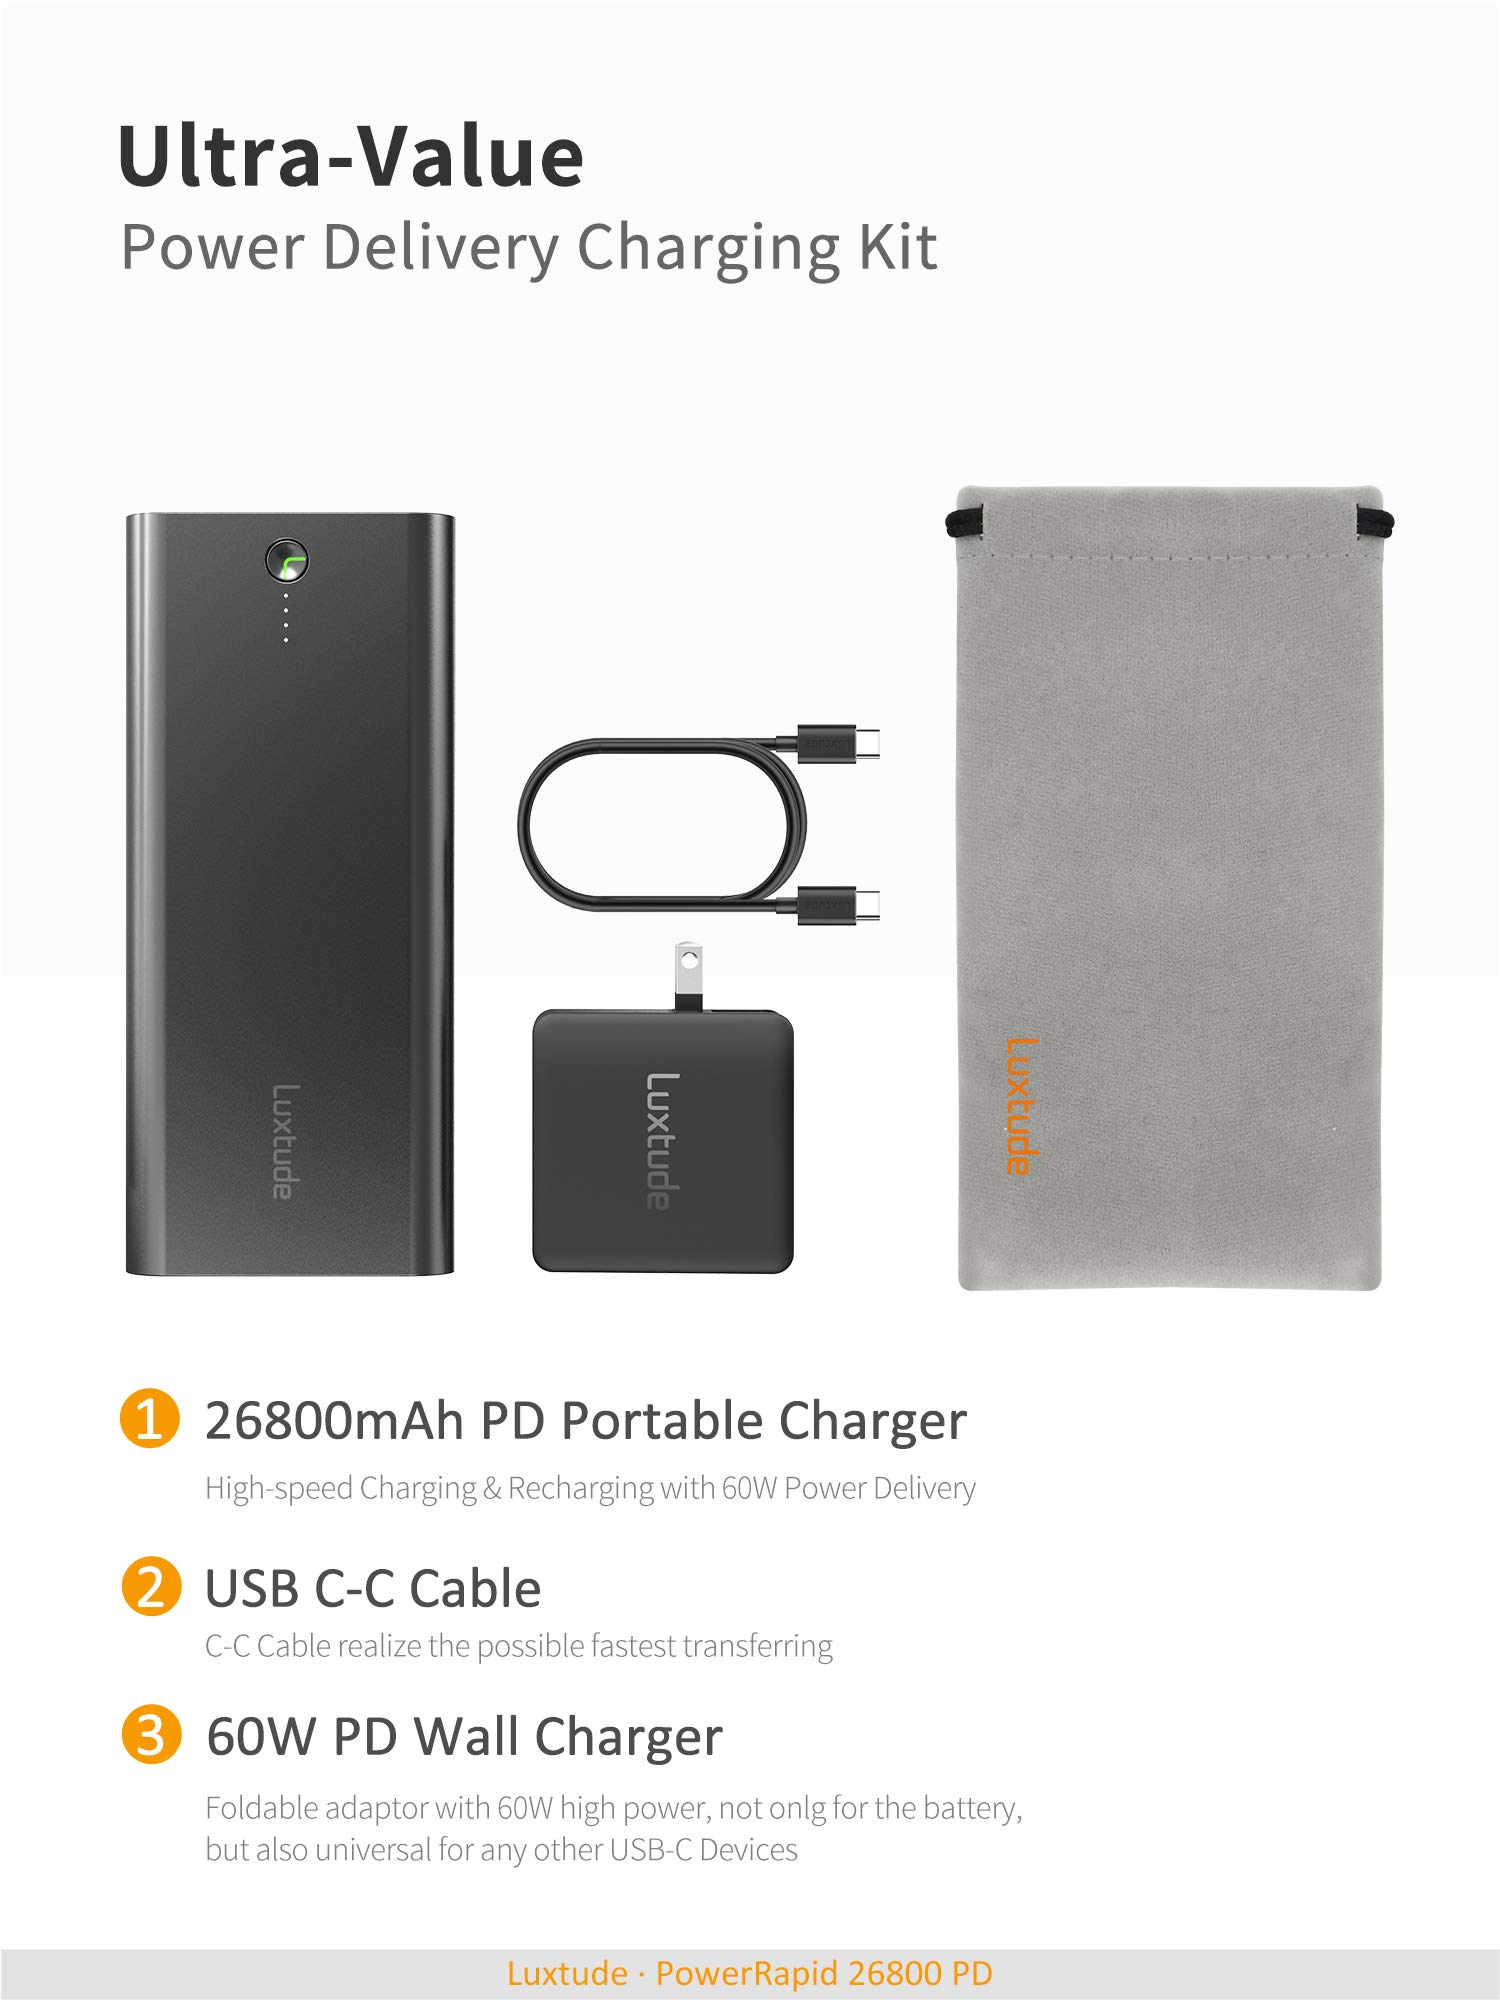 Luxtude PowerRapid 26800 PD, 45W USB C PD Portable Laptop Charger & 60W Power Delivery Wall Charger Bundle, Recharged in 3 Hours USB C Power Bank for MacBook Pro, Notebook, Galaxy S10, Type C Laptops by Luxtude (Image #9)